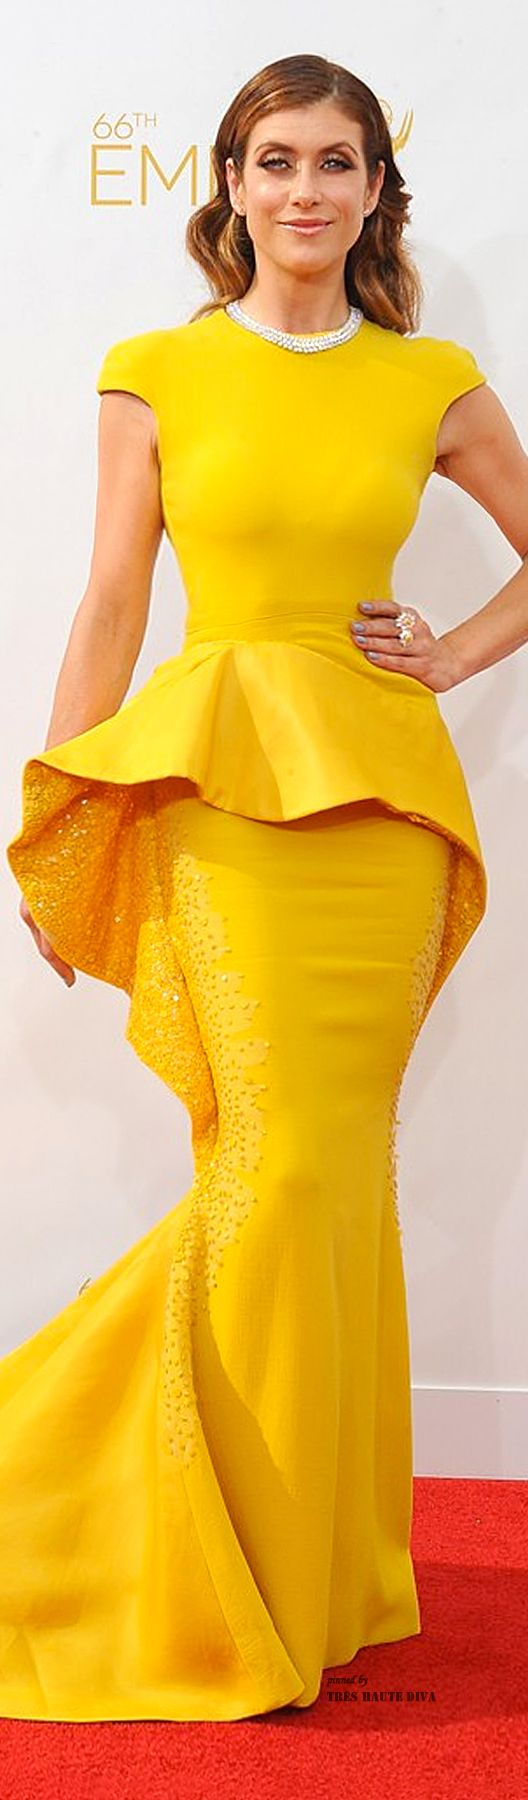 2014 Emmys ♔ Kate Walsh in Stephane Roland Couture and Chopard Jewelry | The House of Beccaria~